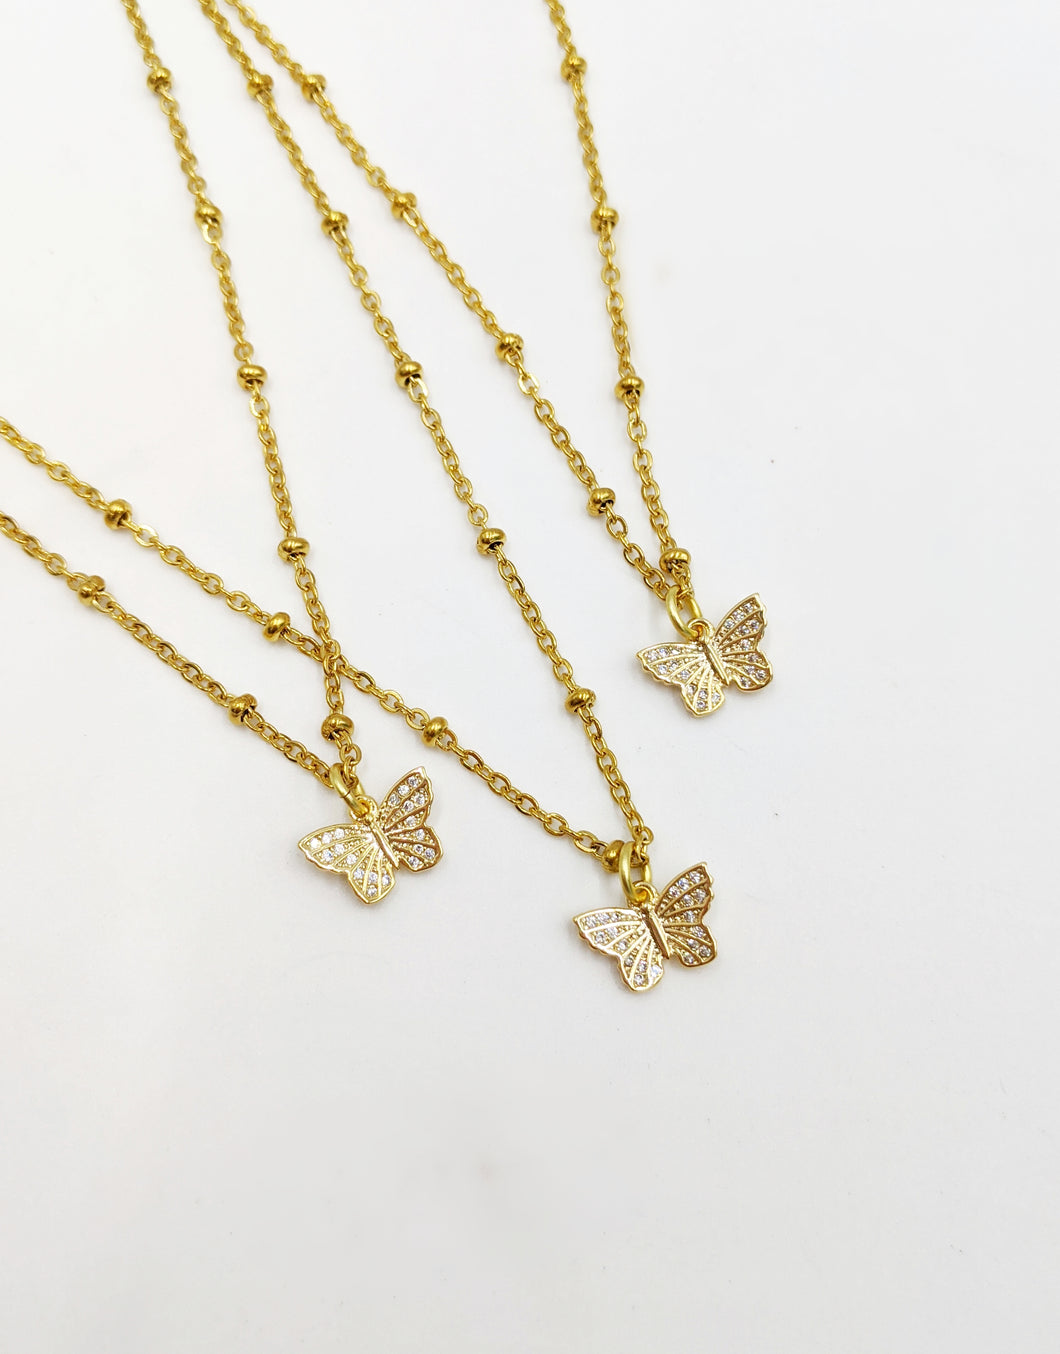 Stainless Steel Gold Chain Dainty Butterfly Necklace